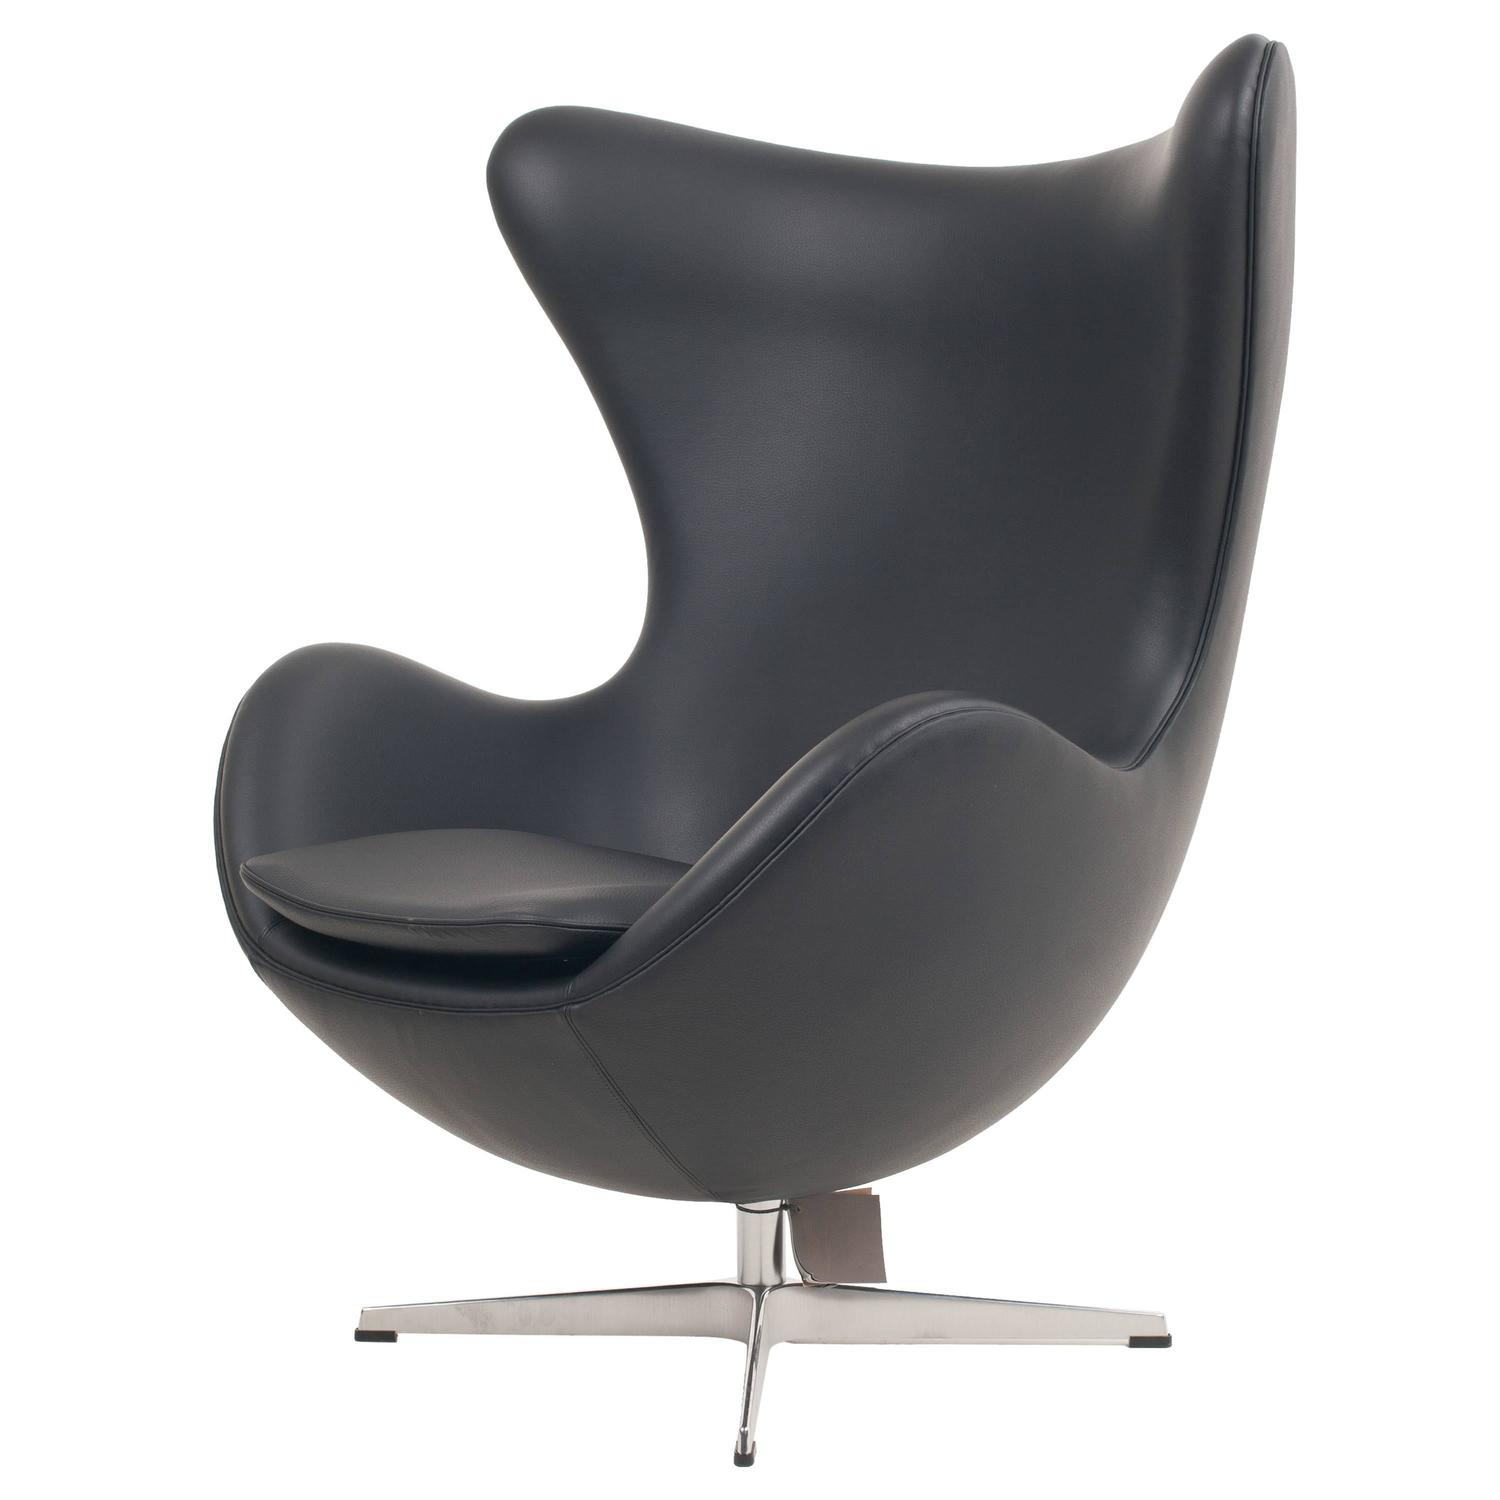 genuine arne jacobsen egg chair black leather fritz hansen at 1stdibs. Black Bedroom Furniture Sets. Home Design Ideas